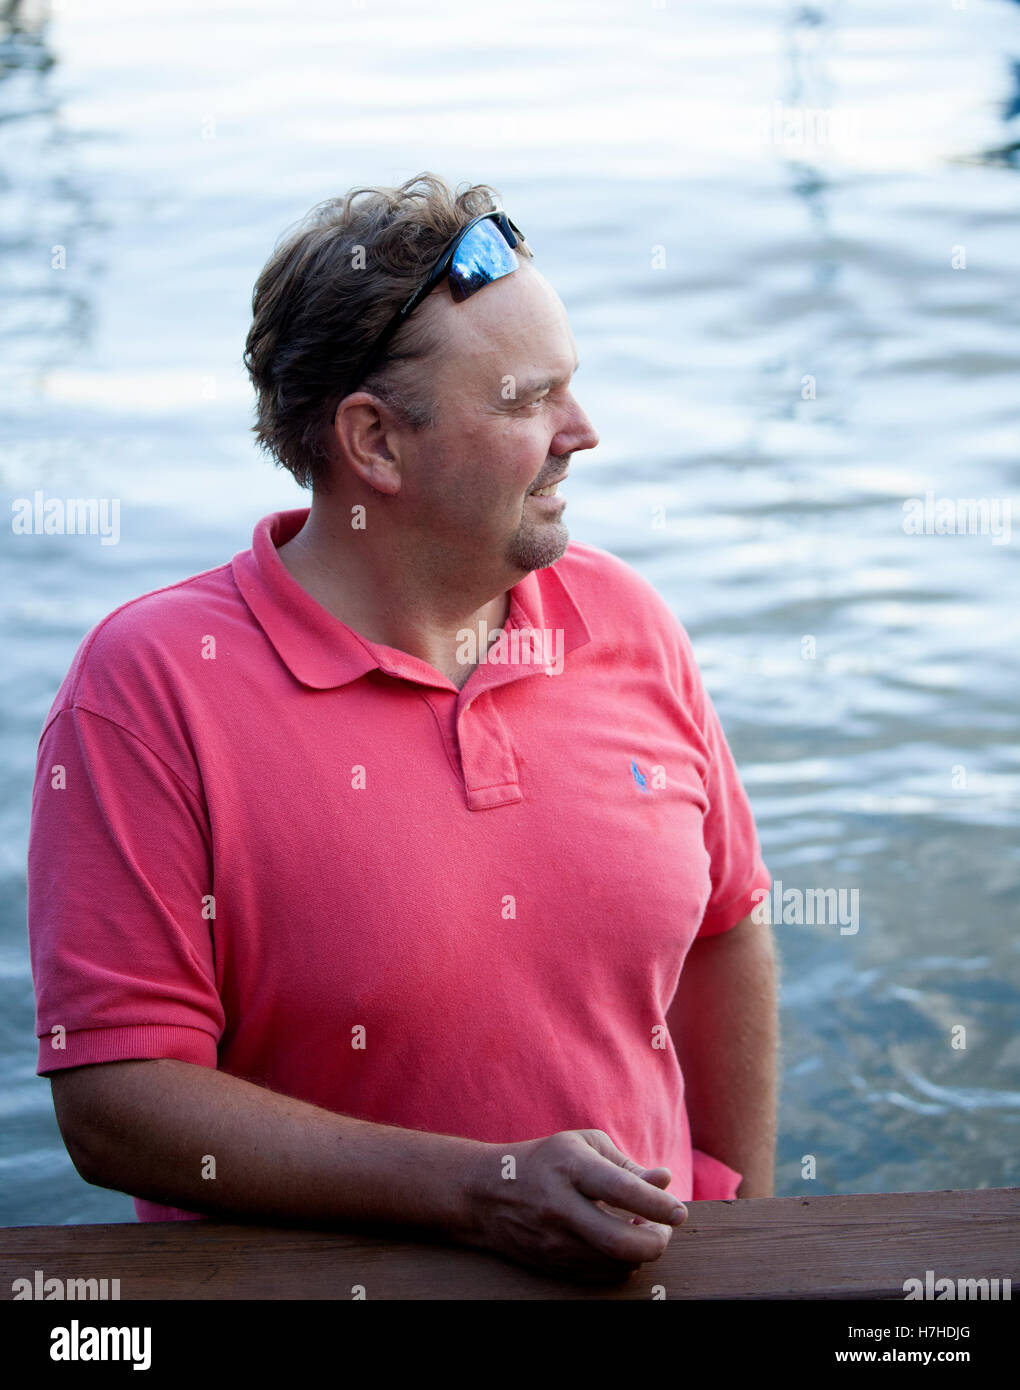 Handsome man standing in the water near the dock relaxing after doing waterfront chores. Clitherall Minnesota MN - Stock Image